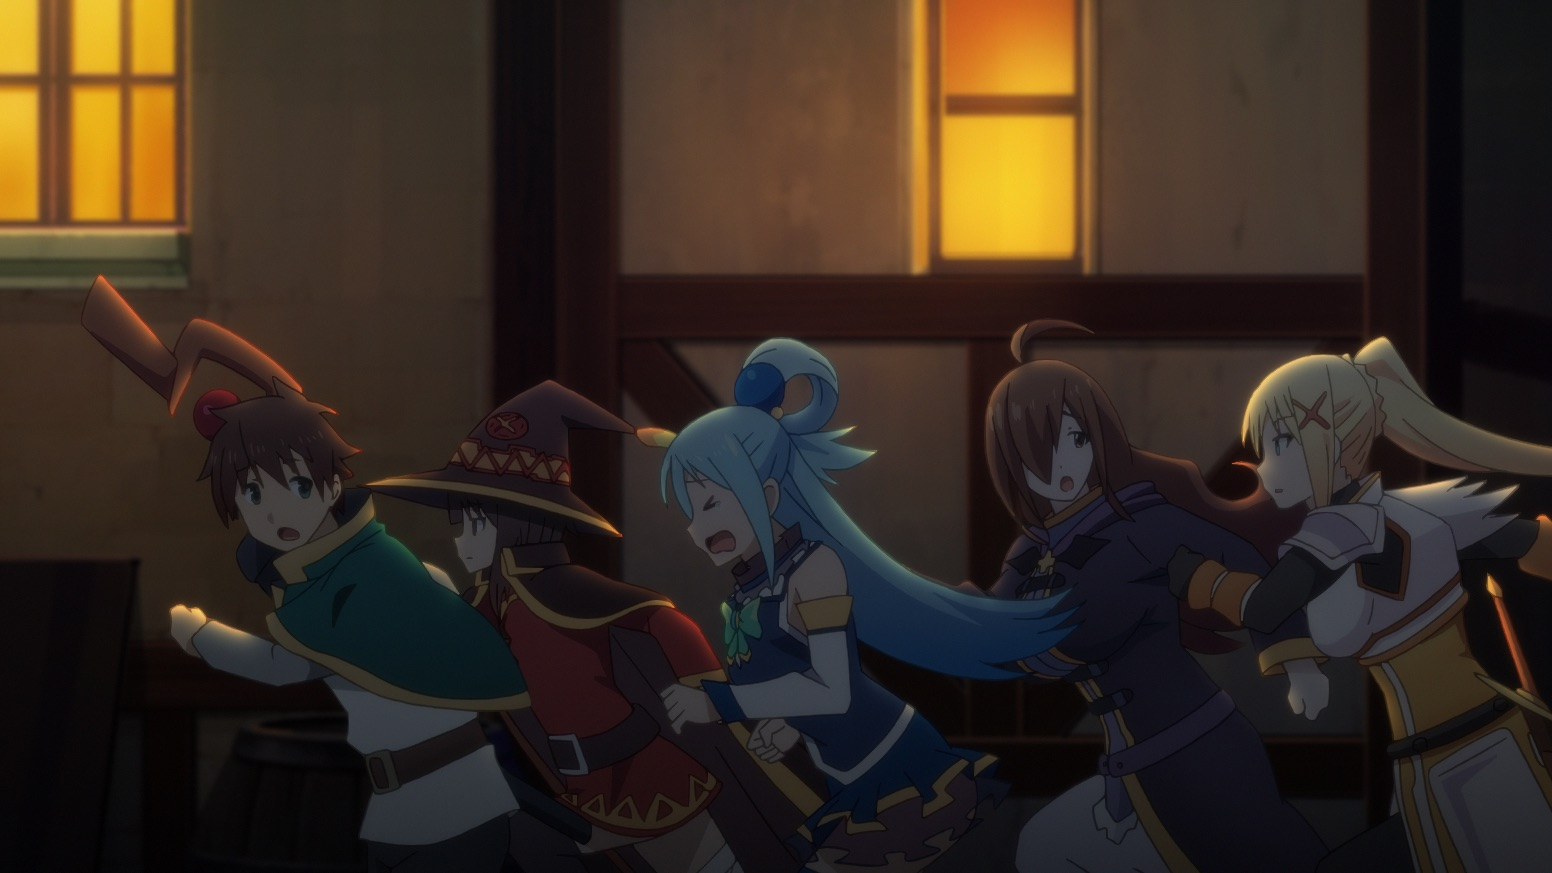 'KonoSuba 2': Official Anime Screenshots from Episode 10